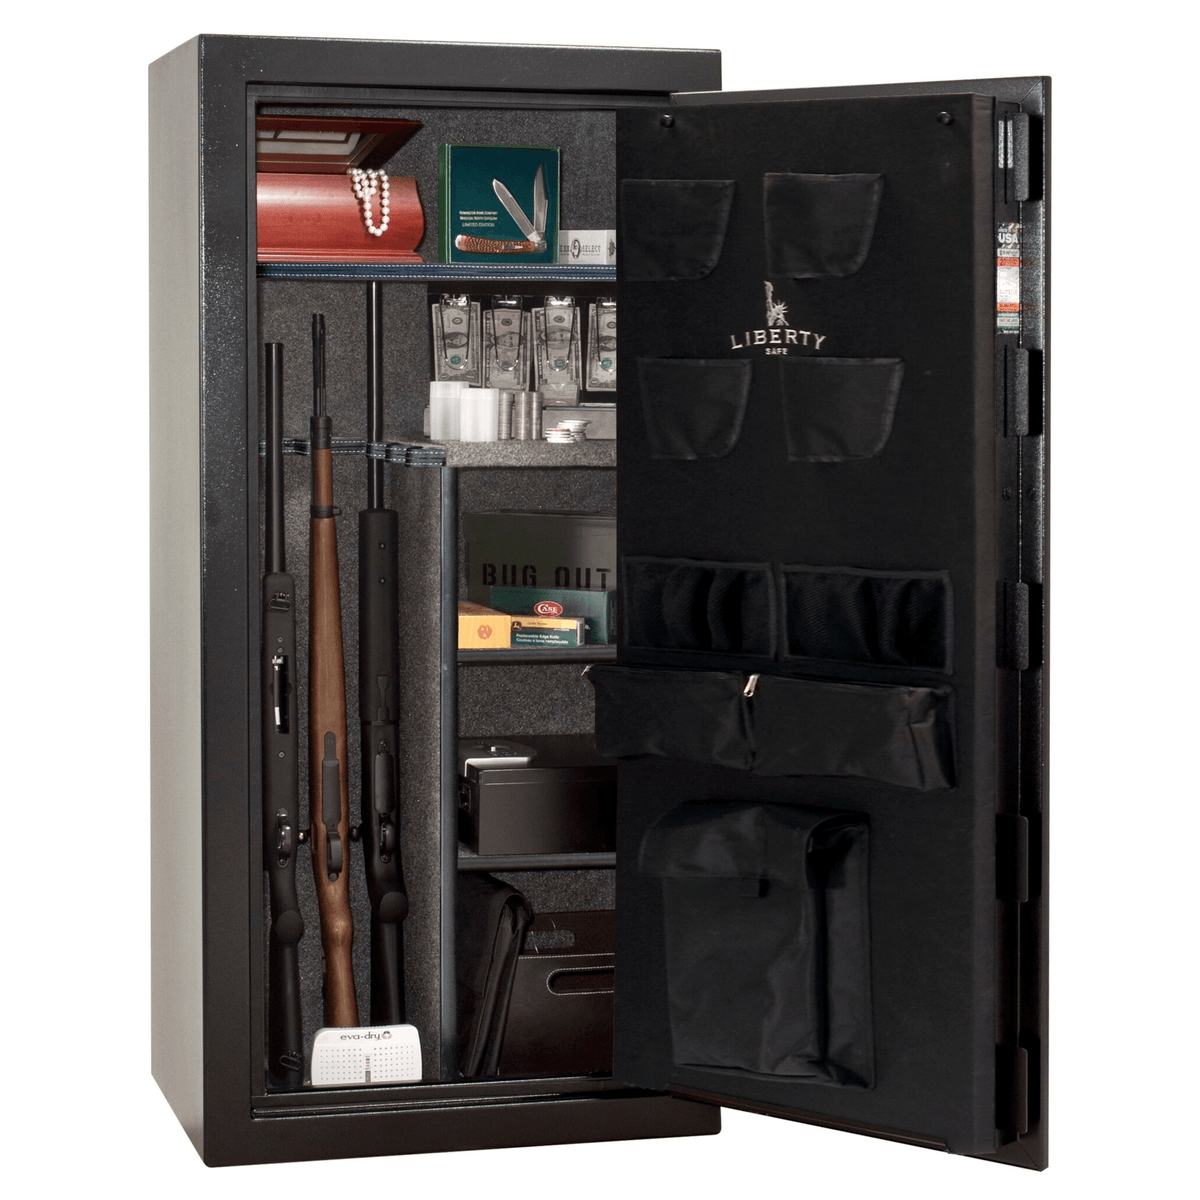 Liberty Safe Centurion 24 Textured Black Mechanical Lock Deluxe